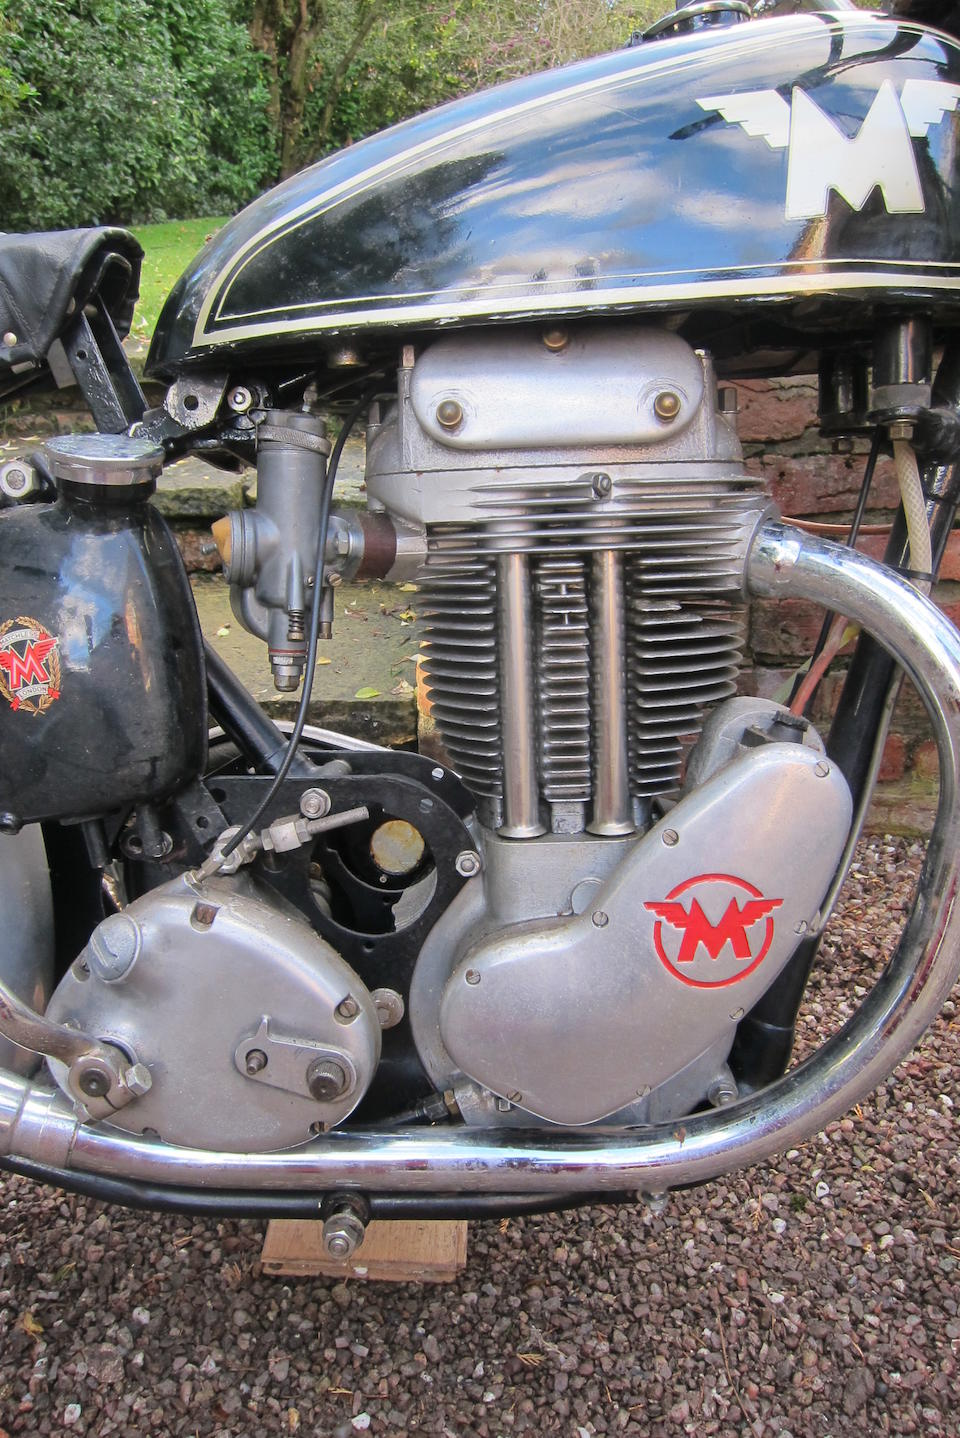 c.1948/1952 Matchless 499cc G80 'Competition' Project Frame no. 30359 (see text) Engine no. 52/G80 1128C